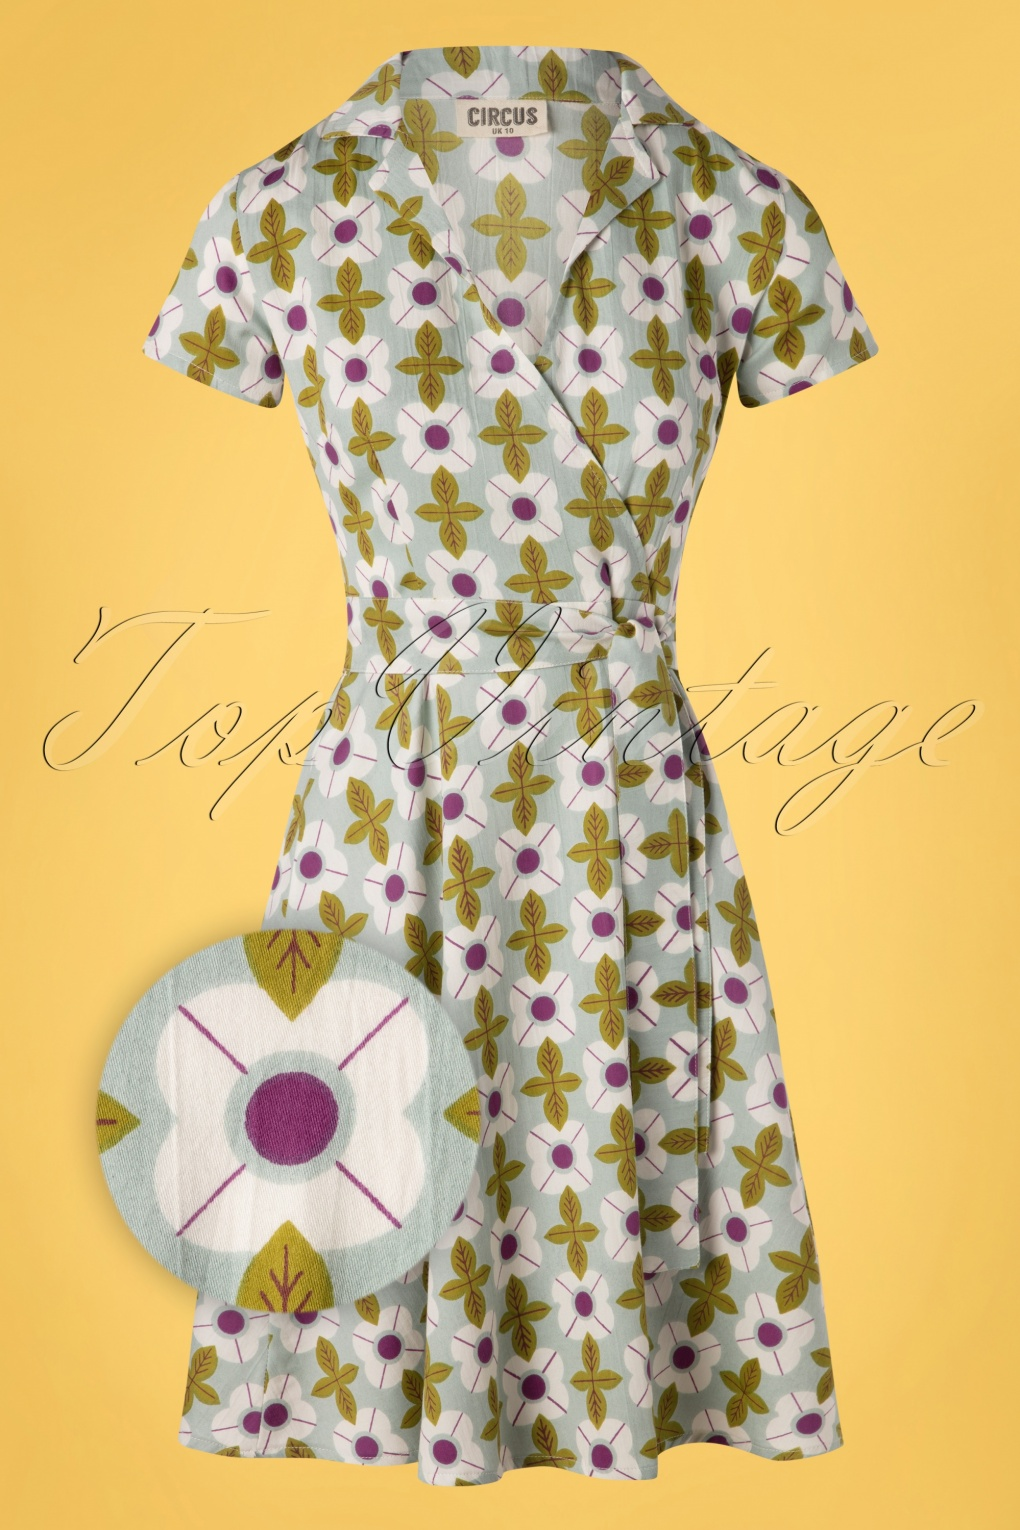 60s Dresses | 1960s Dresses Mod, Mini, Hippie 60s Cynthia Tile Floral Dress in Duck Egg Green £61.37 AT vintagedancer.com